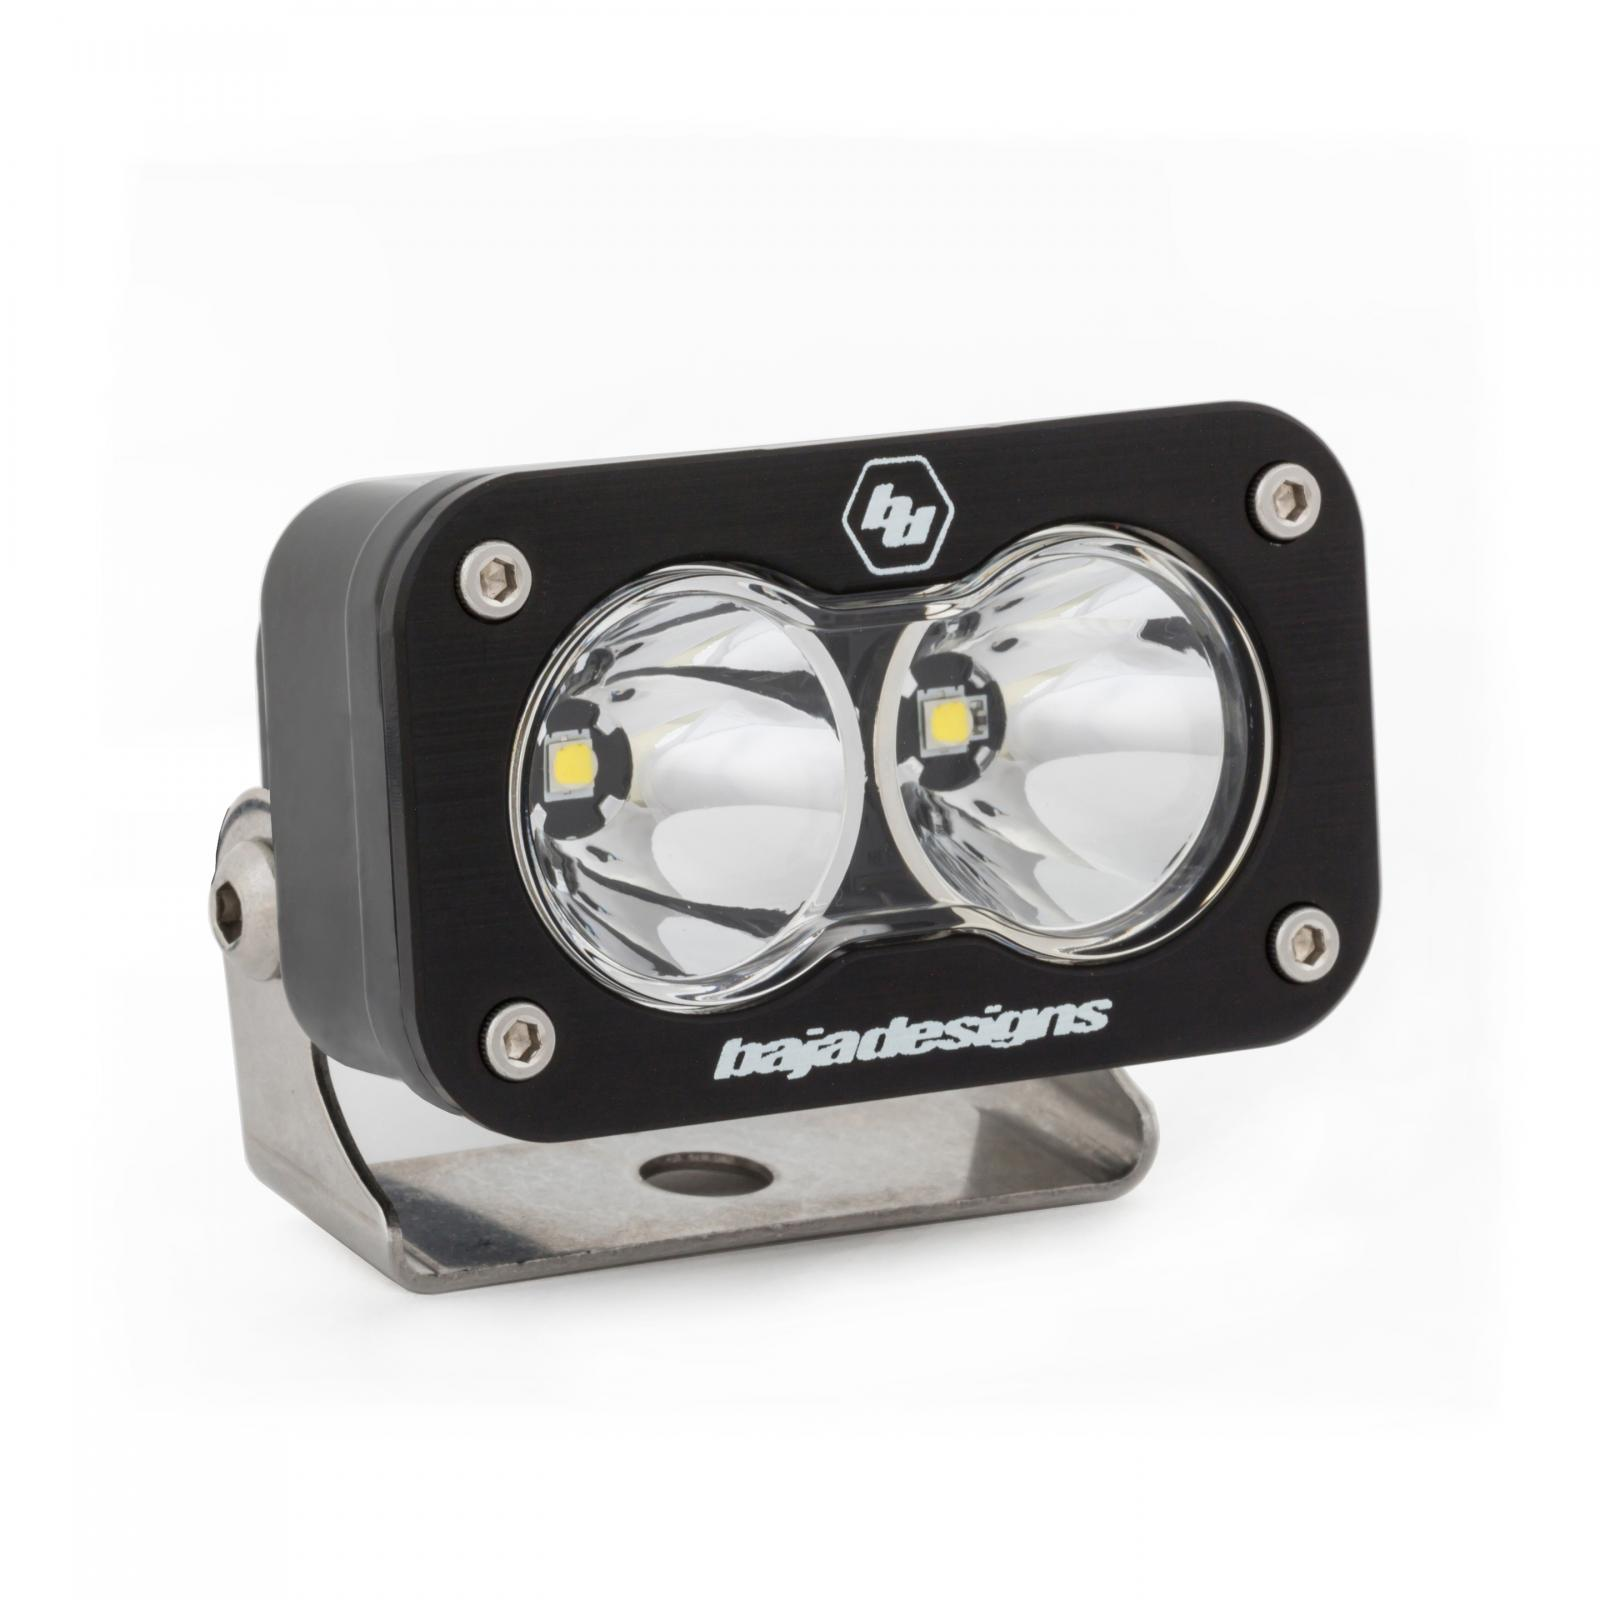 LED Work Light Clear Lens Spot Pattern Each S2 Sport Baja Designs